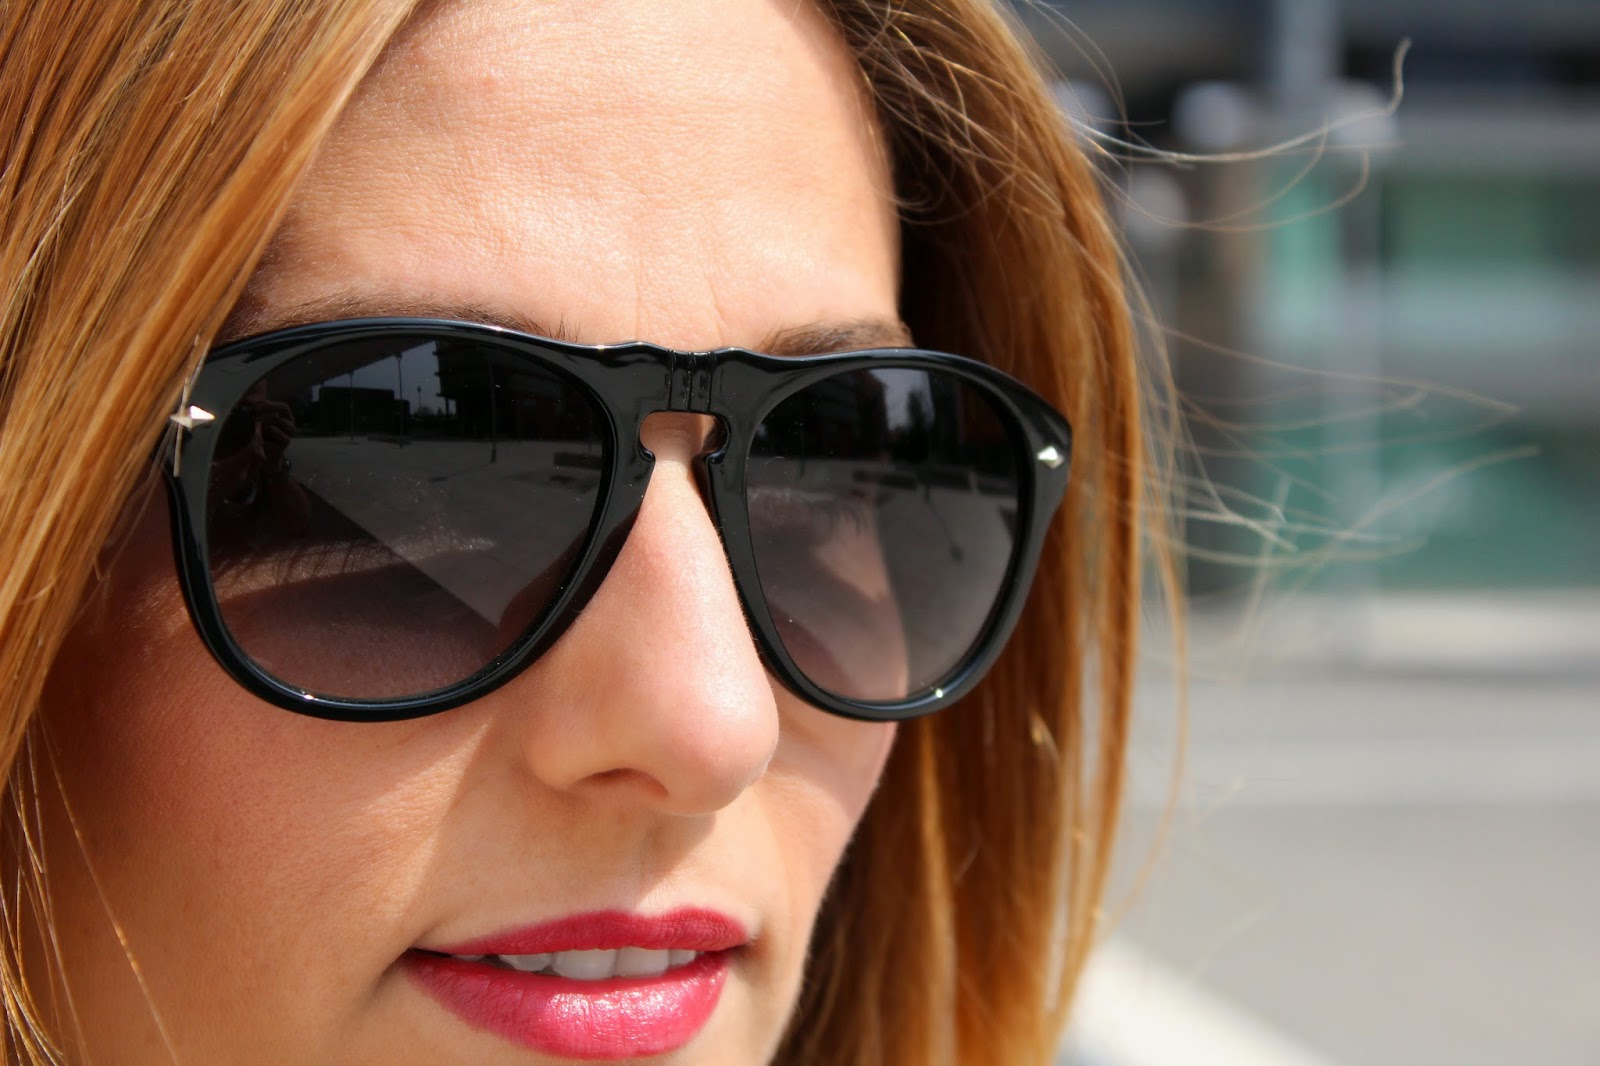 Eniwhere Fashion - NoRain sunglasses